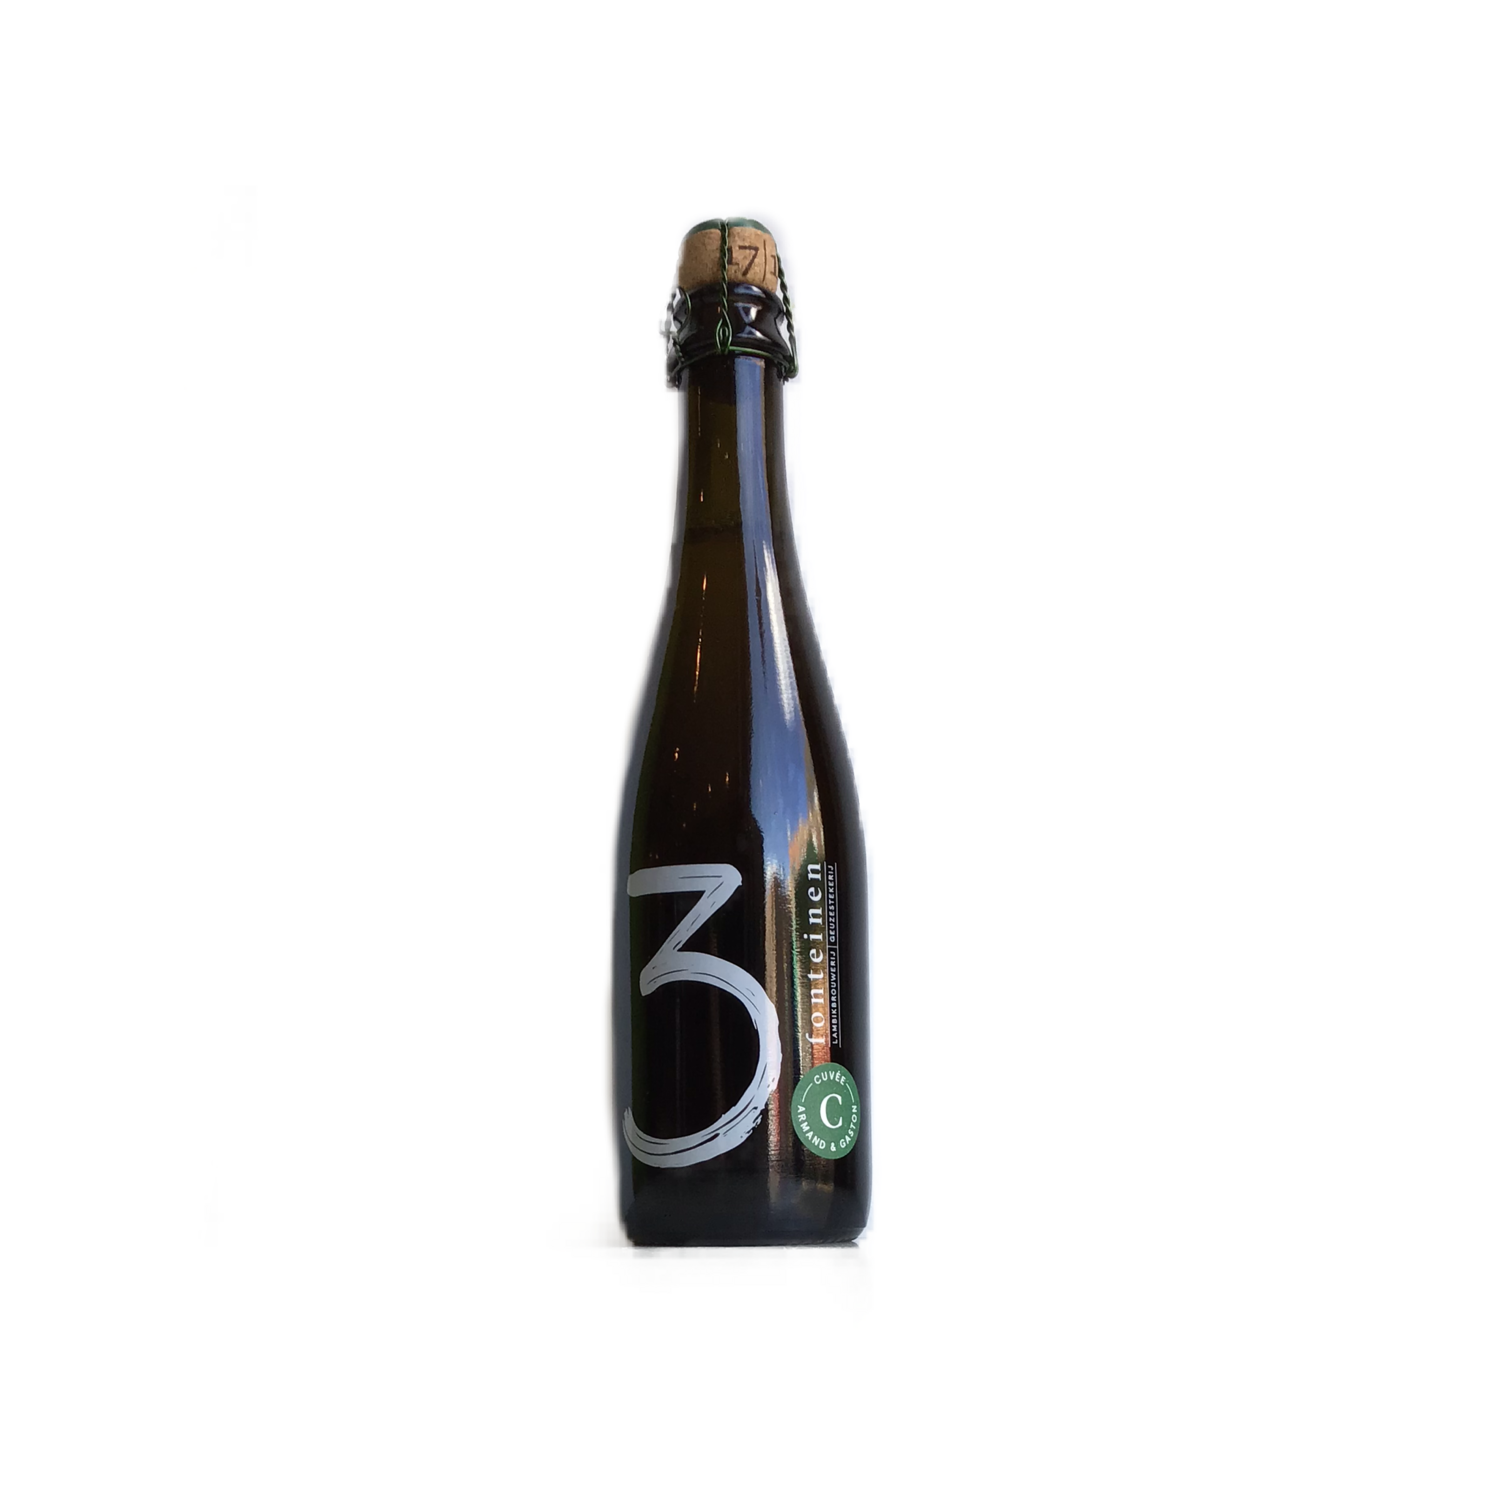 (LIMIT 1) SMALL Drie Fonteinen Cuvee Armand and Gaston